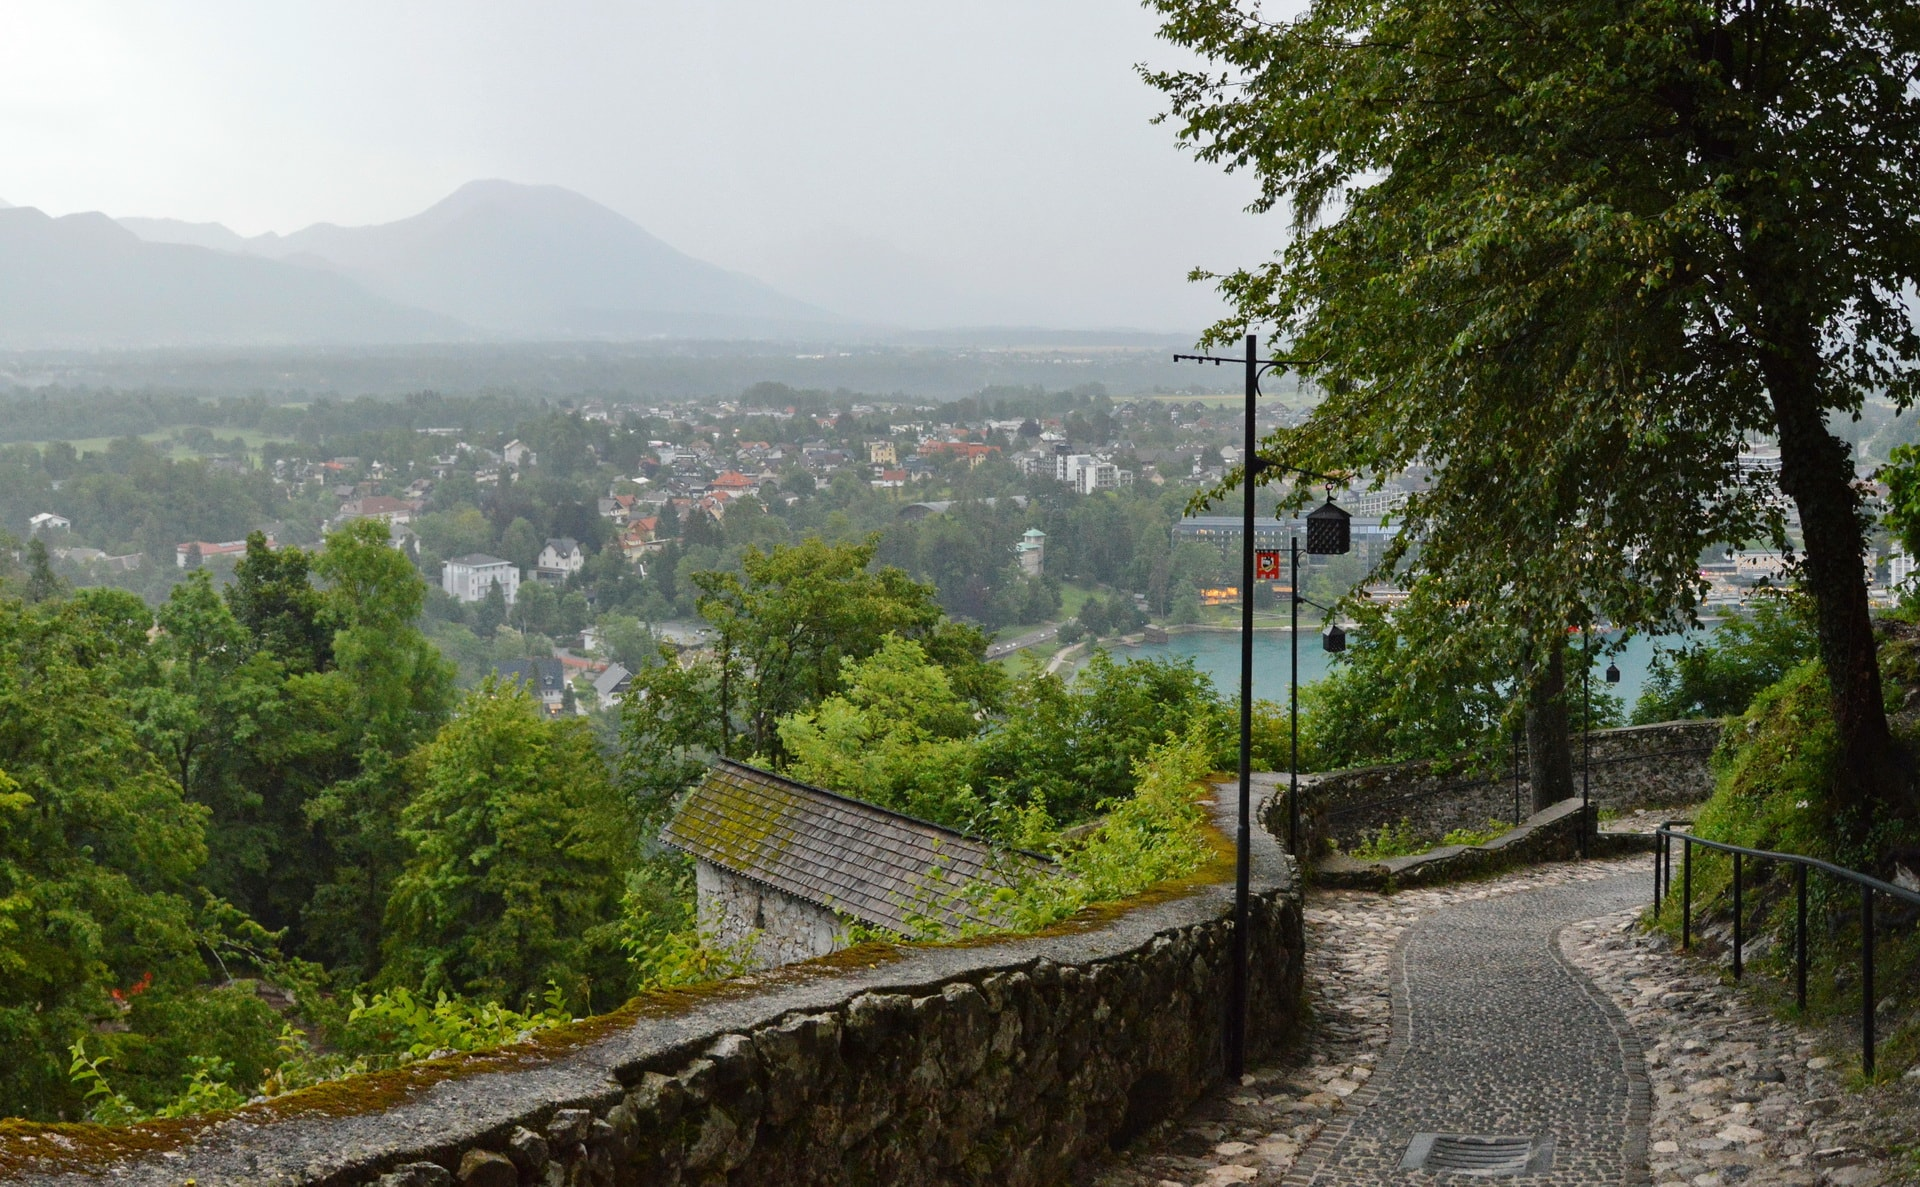 Climbing towards the Bled Castle